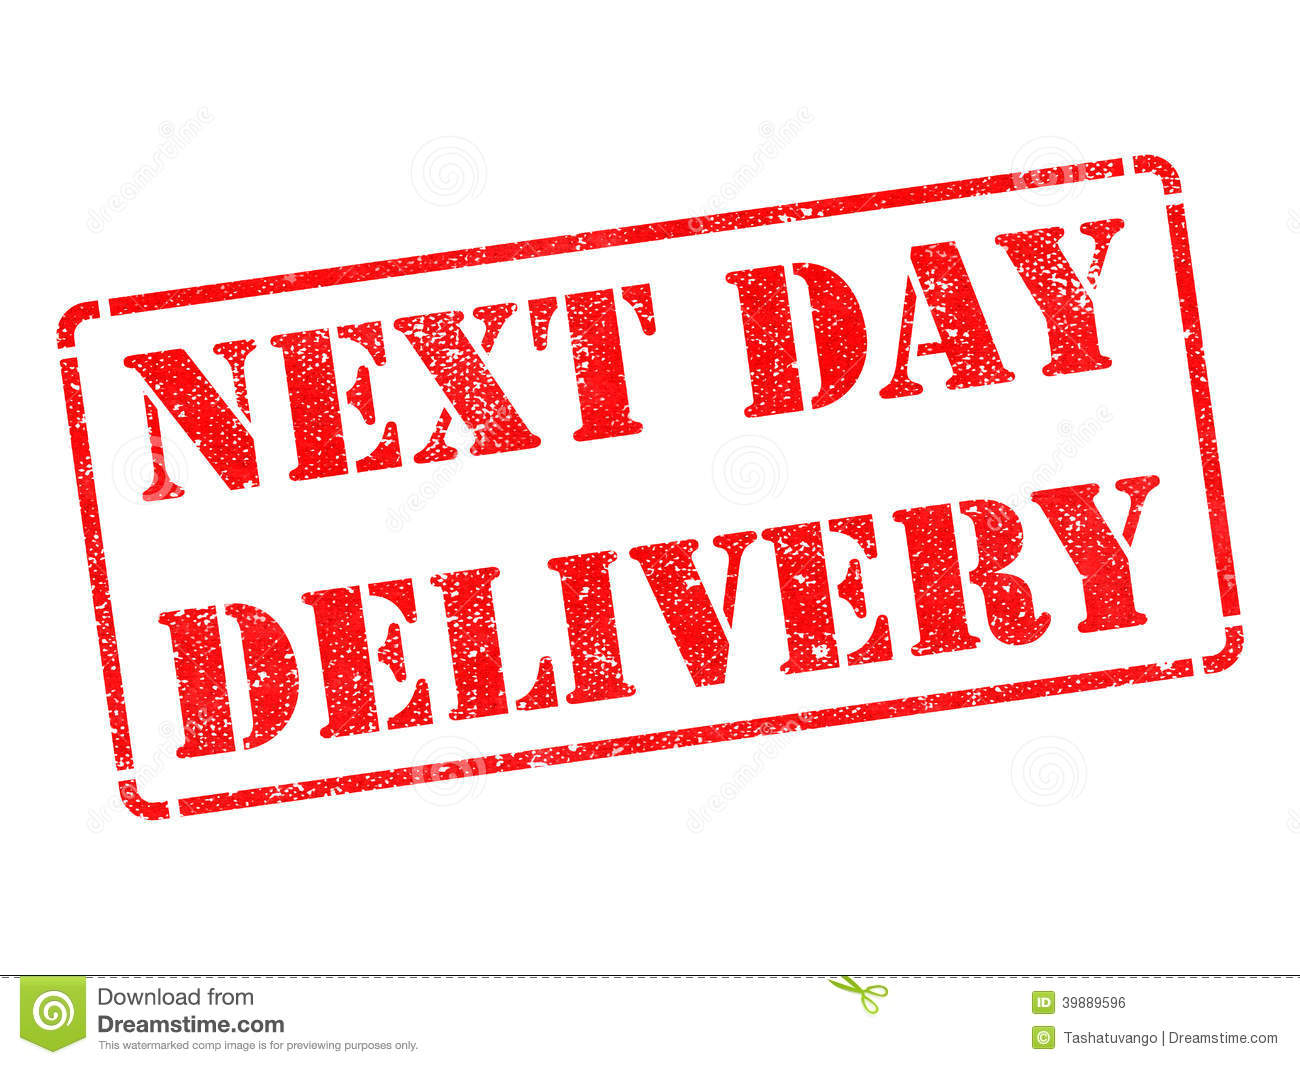 UPS Next Day Air packages are guaranteed to arrive at their destination by A.M. the next day after they are shipped. UPS Next Day Air guarantees overnight delivery to all 50 states and Puerto Rico, with some limitations for deliveries to Alaska and Hawaii.